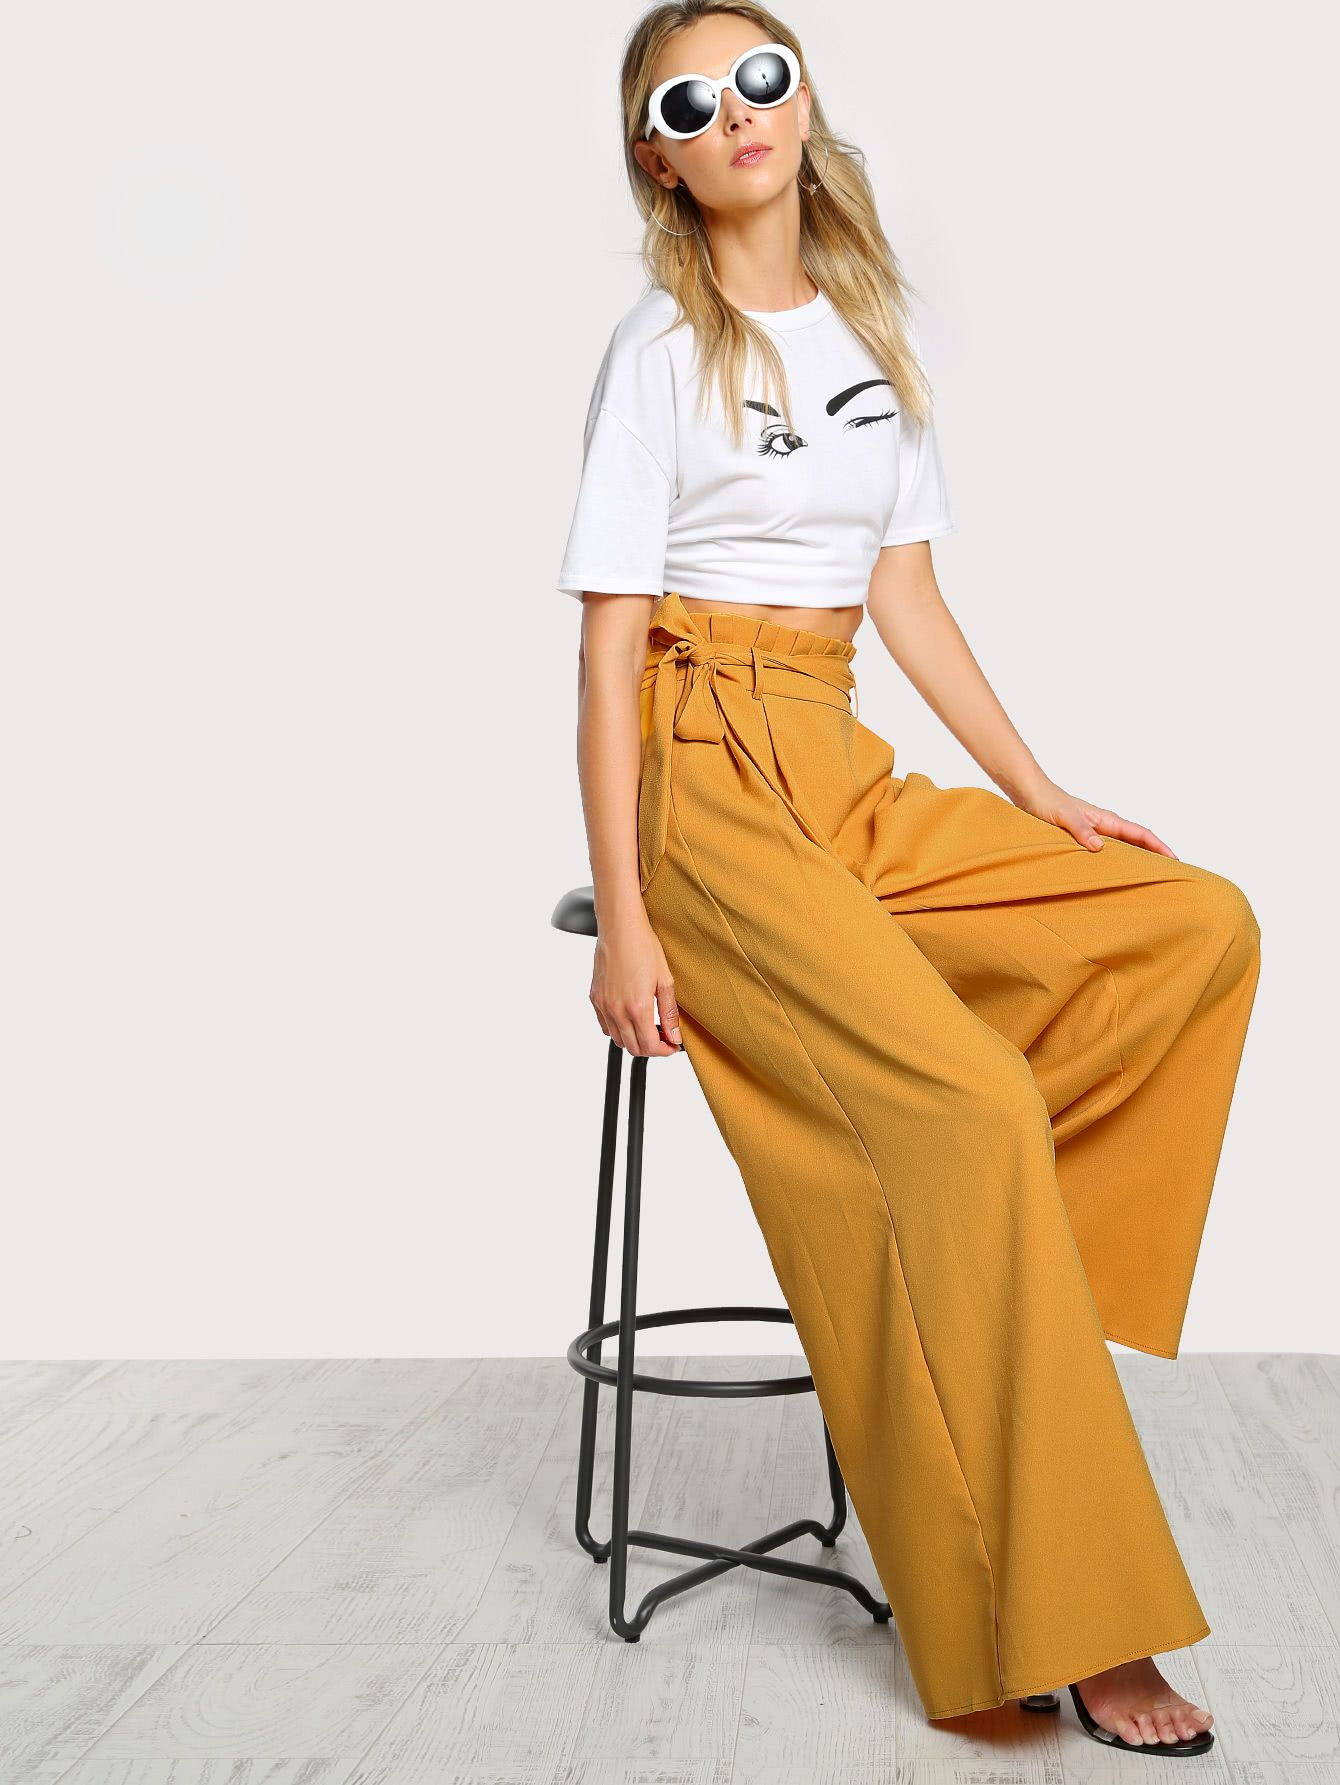 9815a8ab30b0 Shop Frill Waist Belted Palazzo Pants online. SheIn offers Frill Waist  Belted Palazzo Pants & more to fit your fashionable needs.